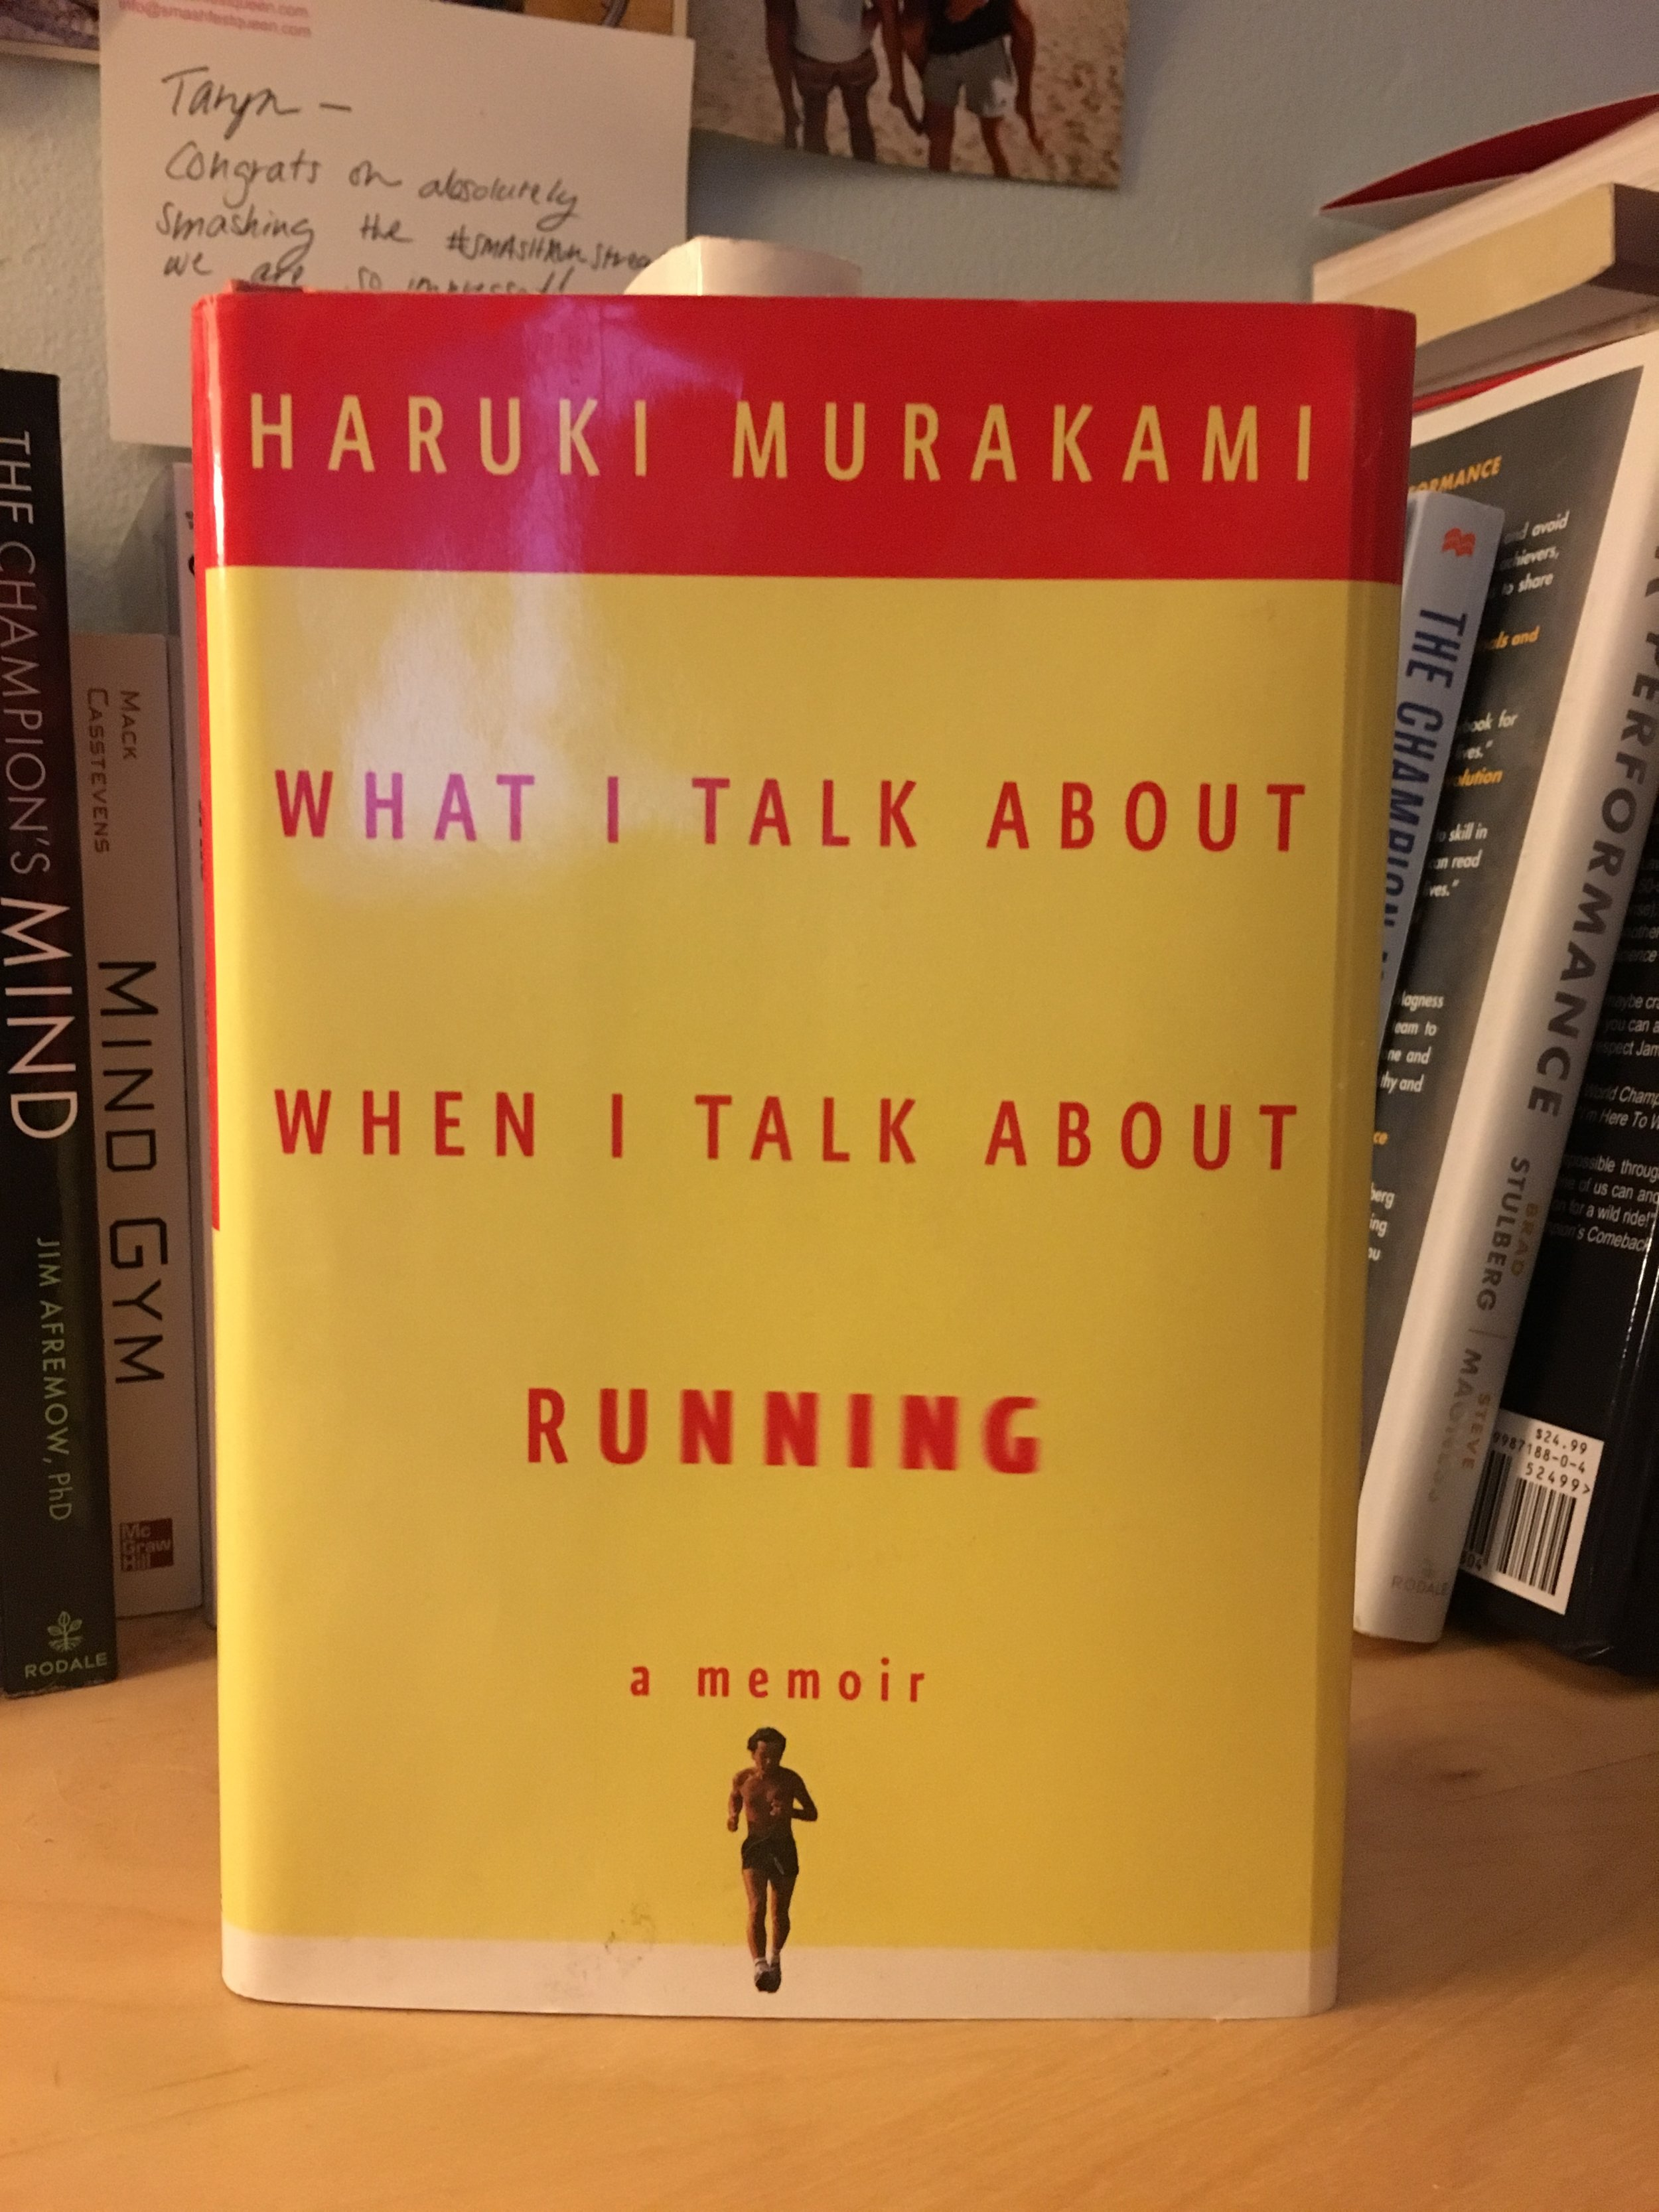 This is my favorite book about running.